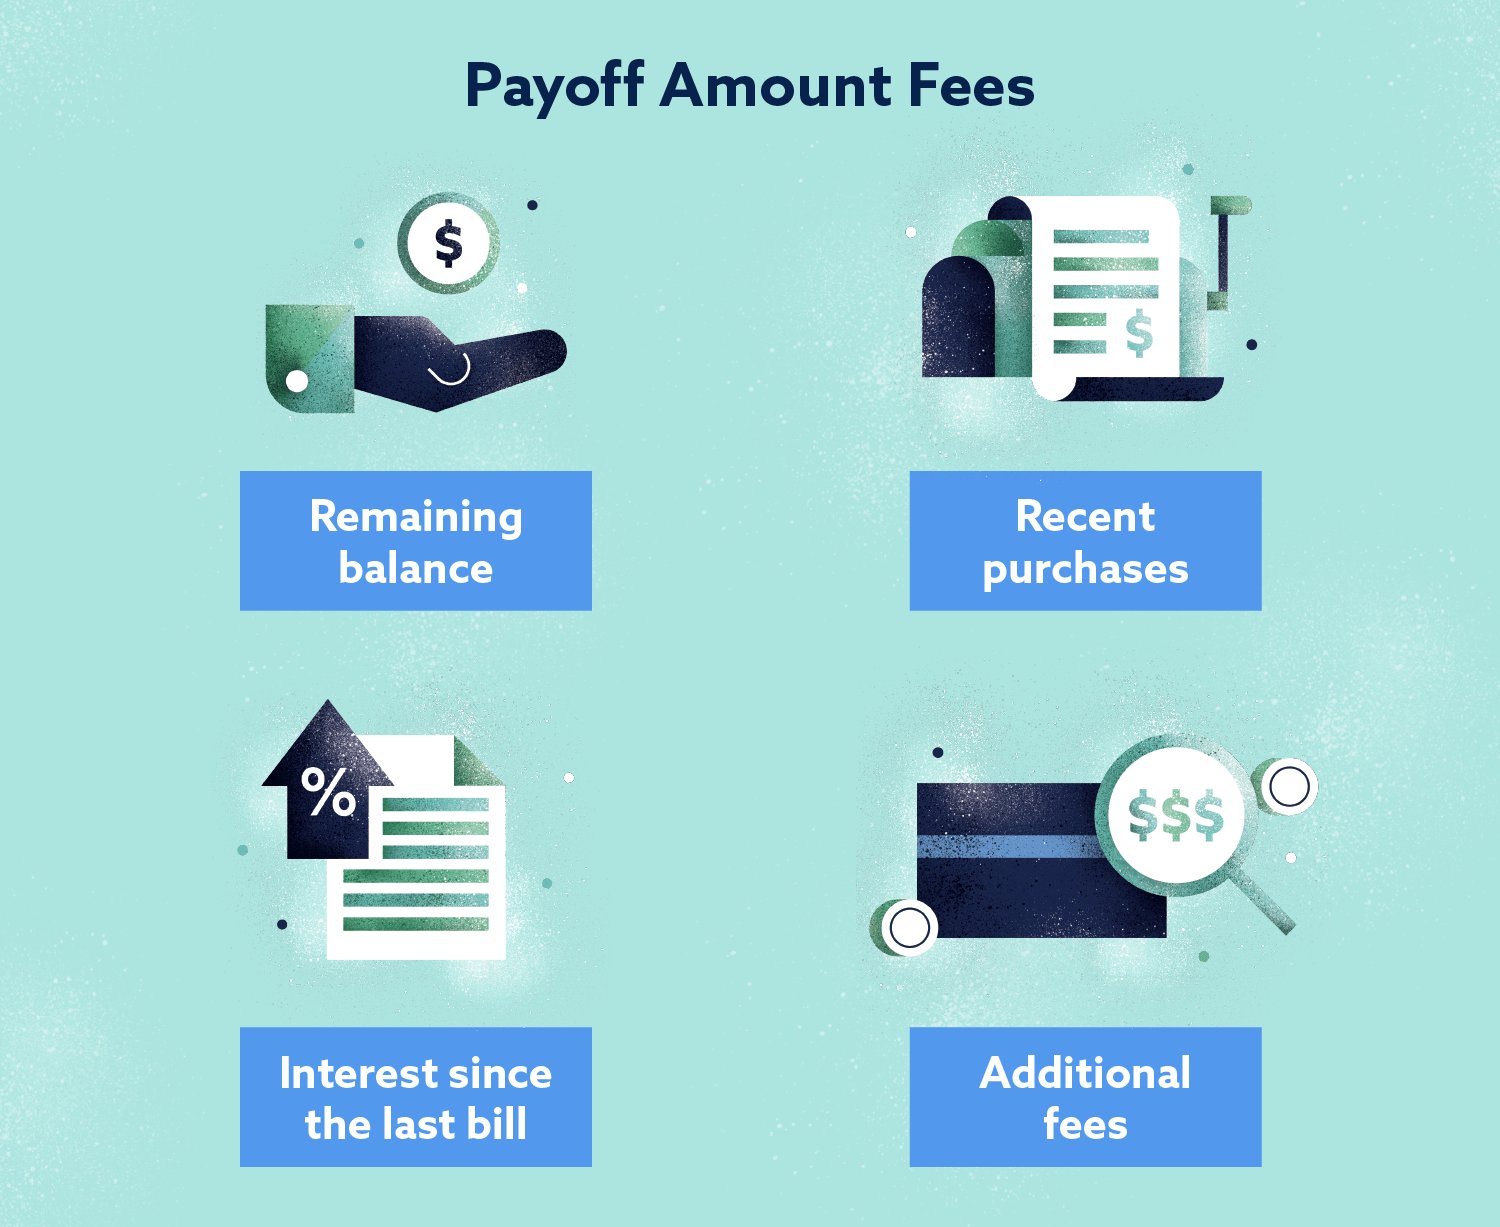 Payoff Amount Fees Image